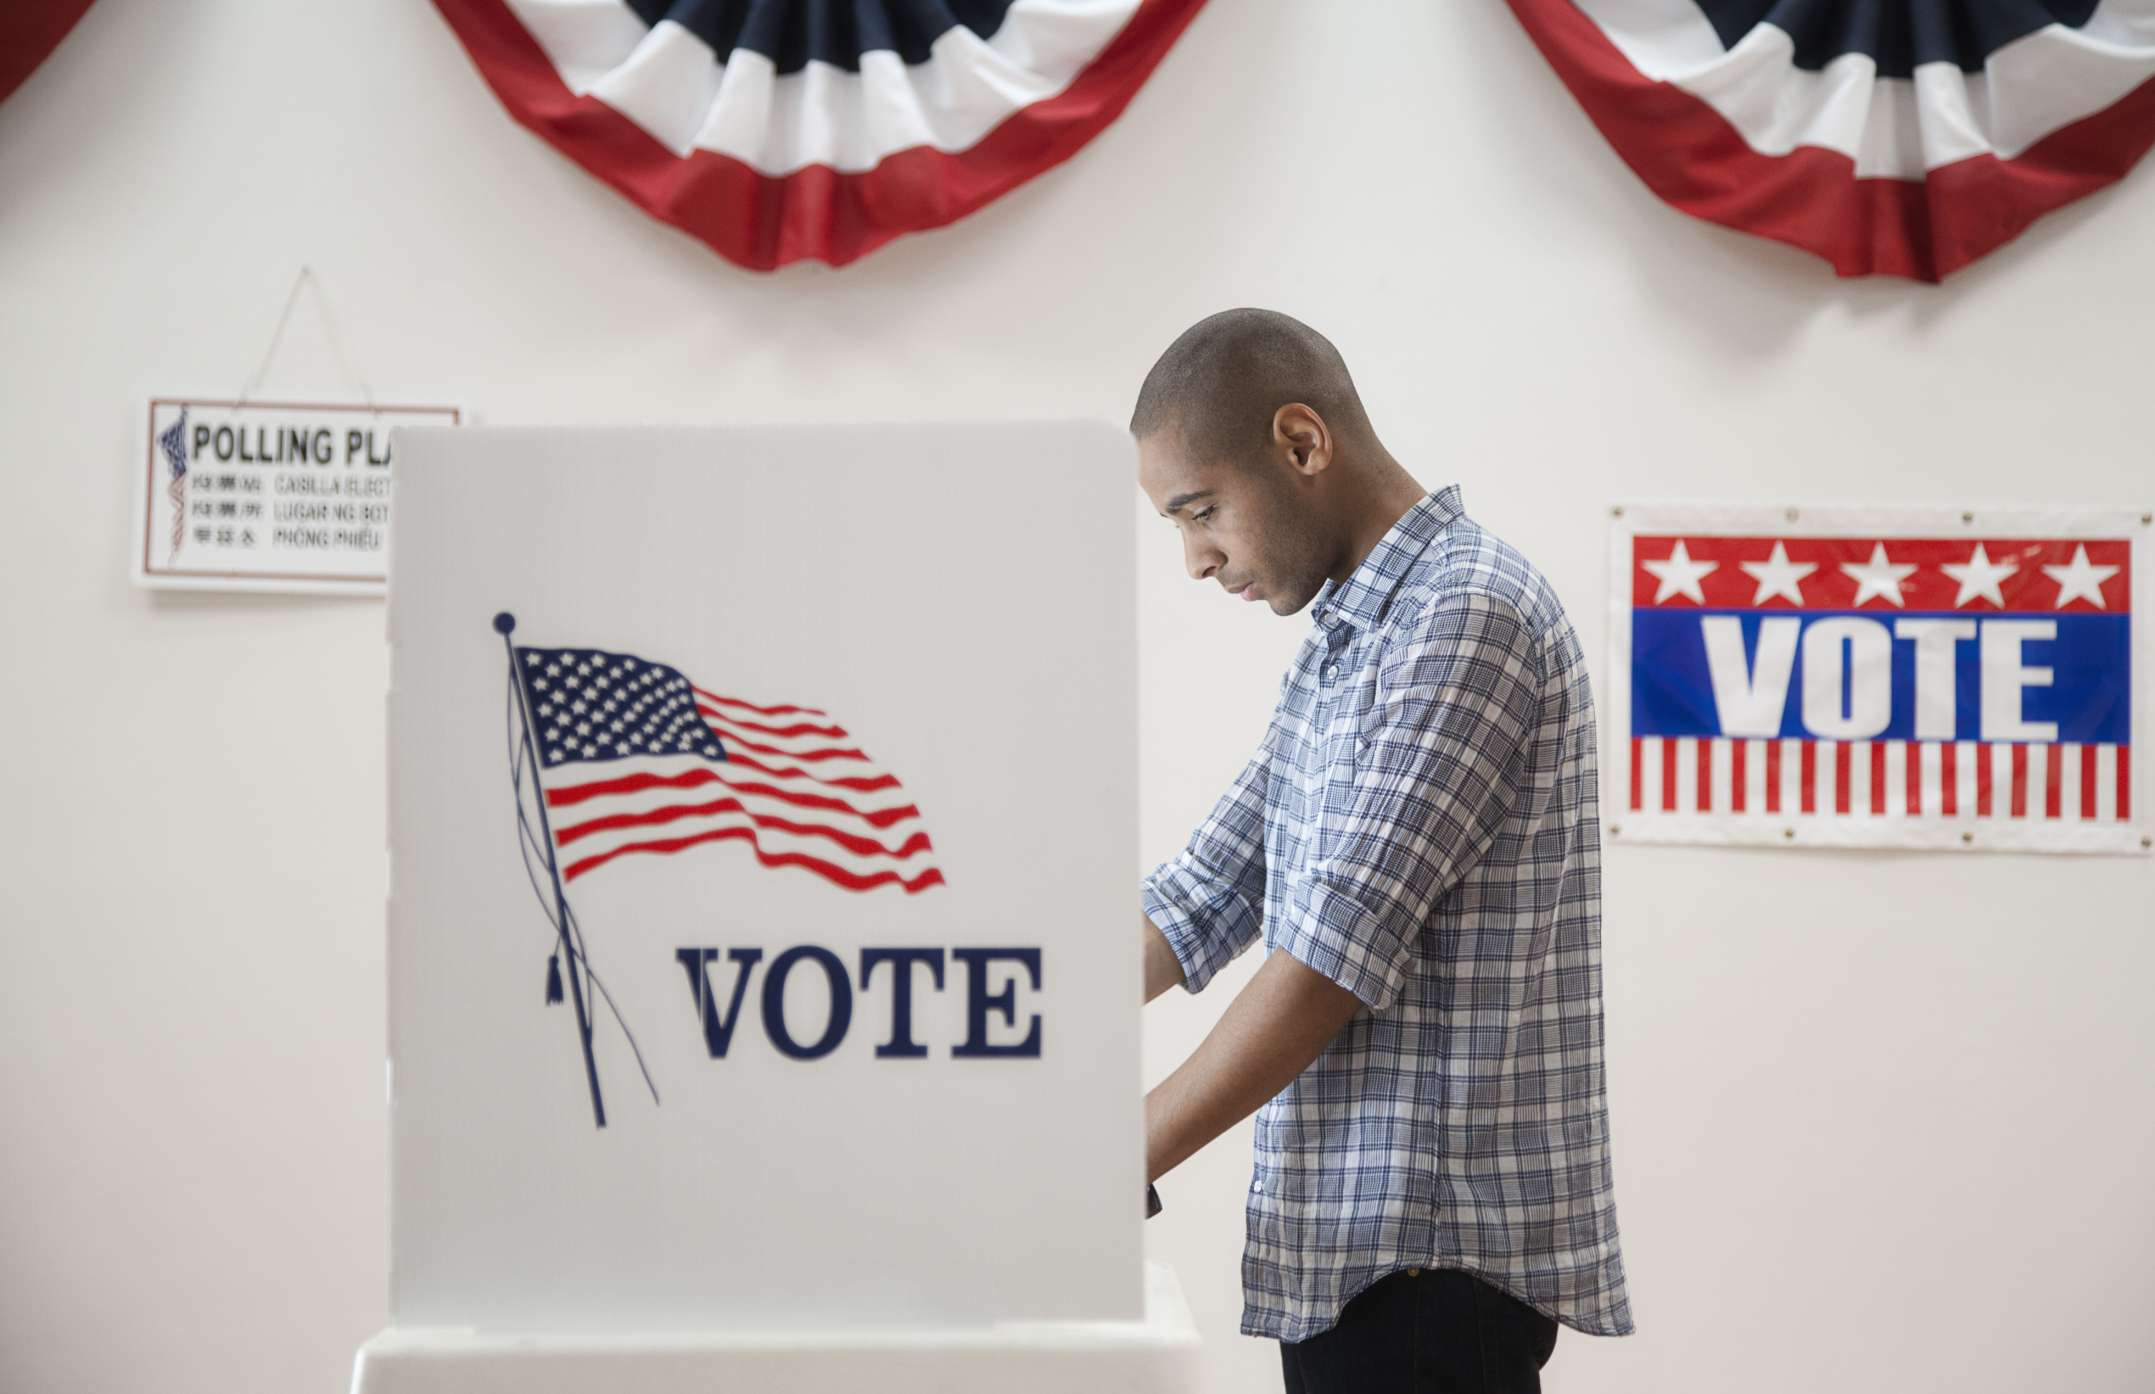 Man voting in polling place